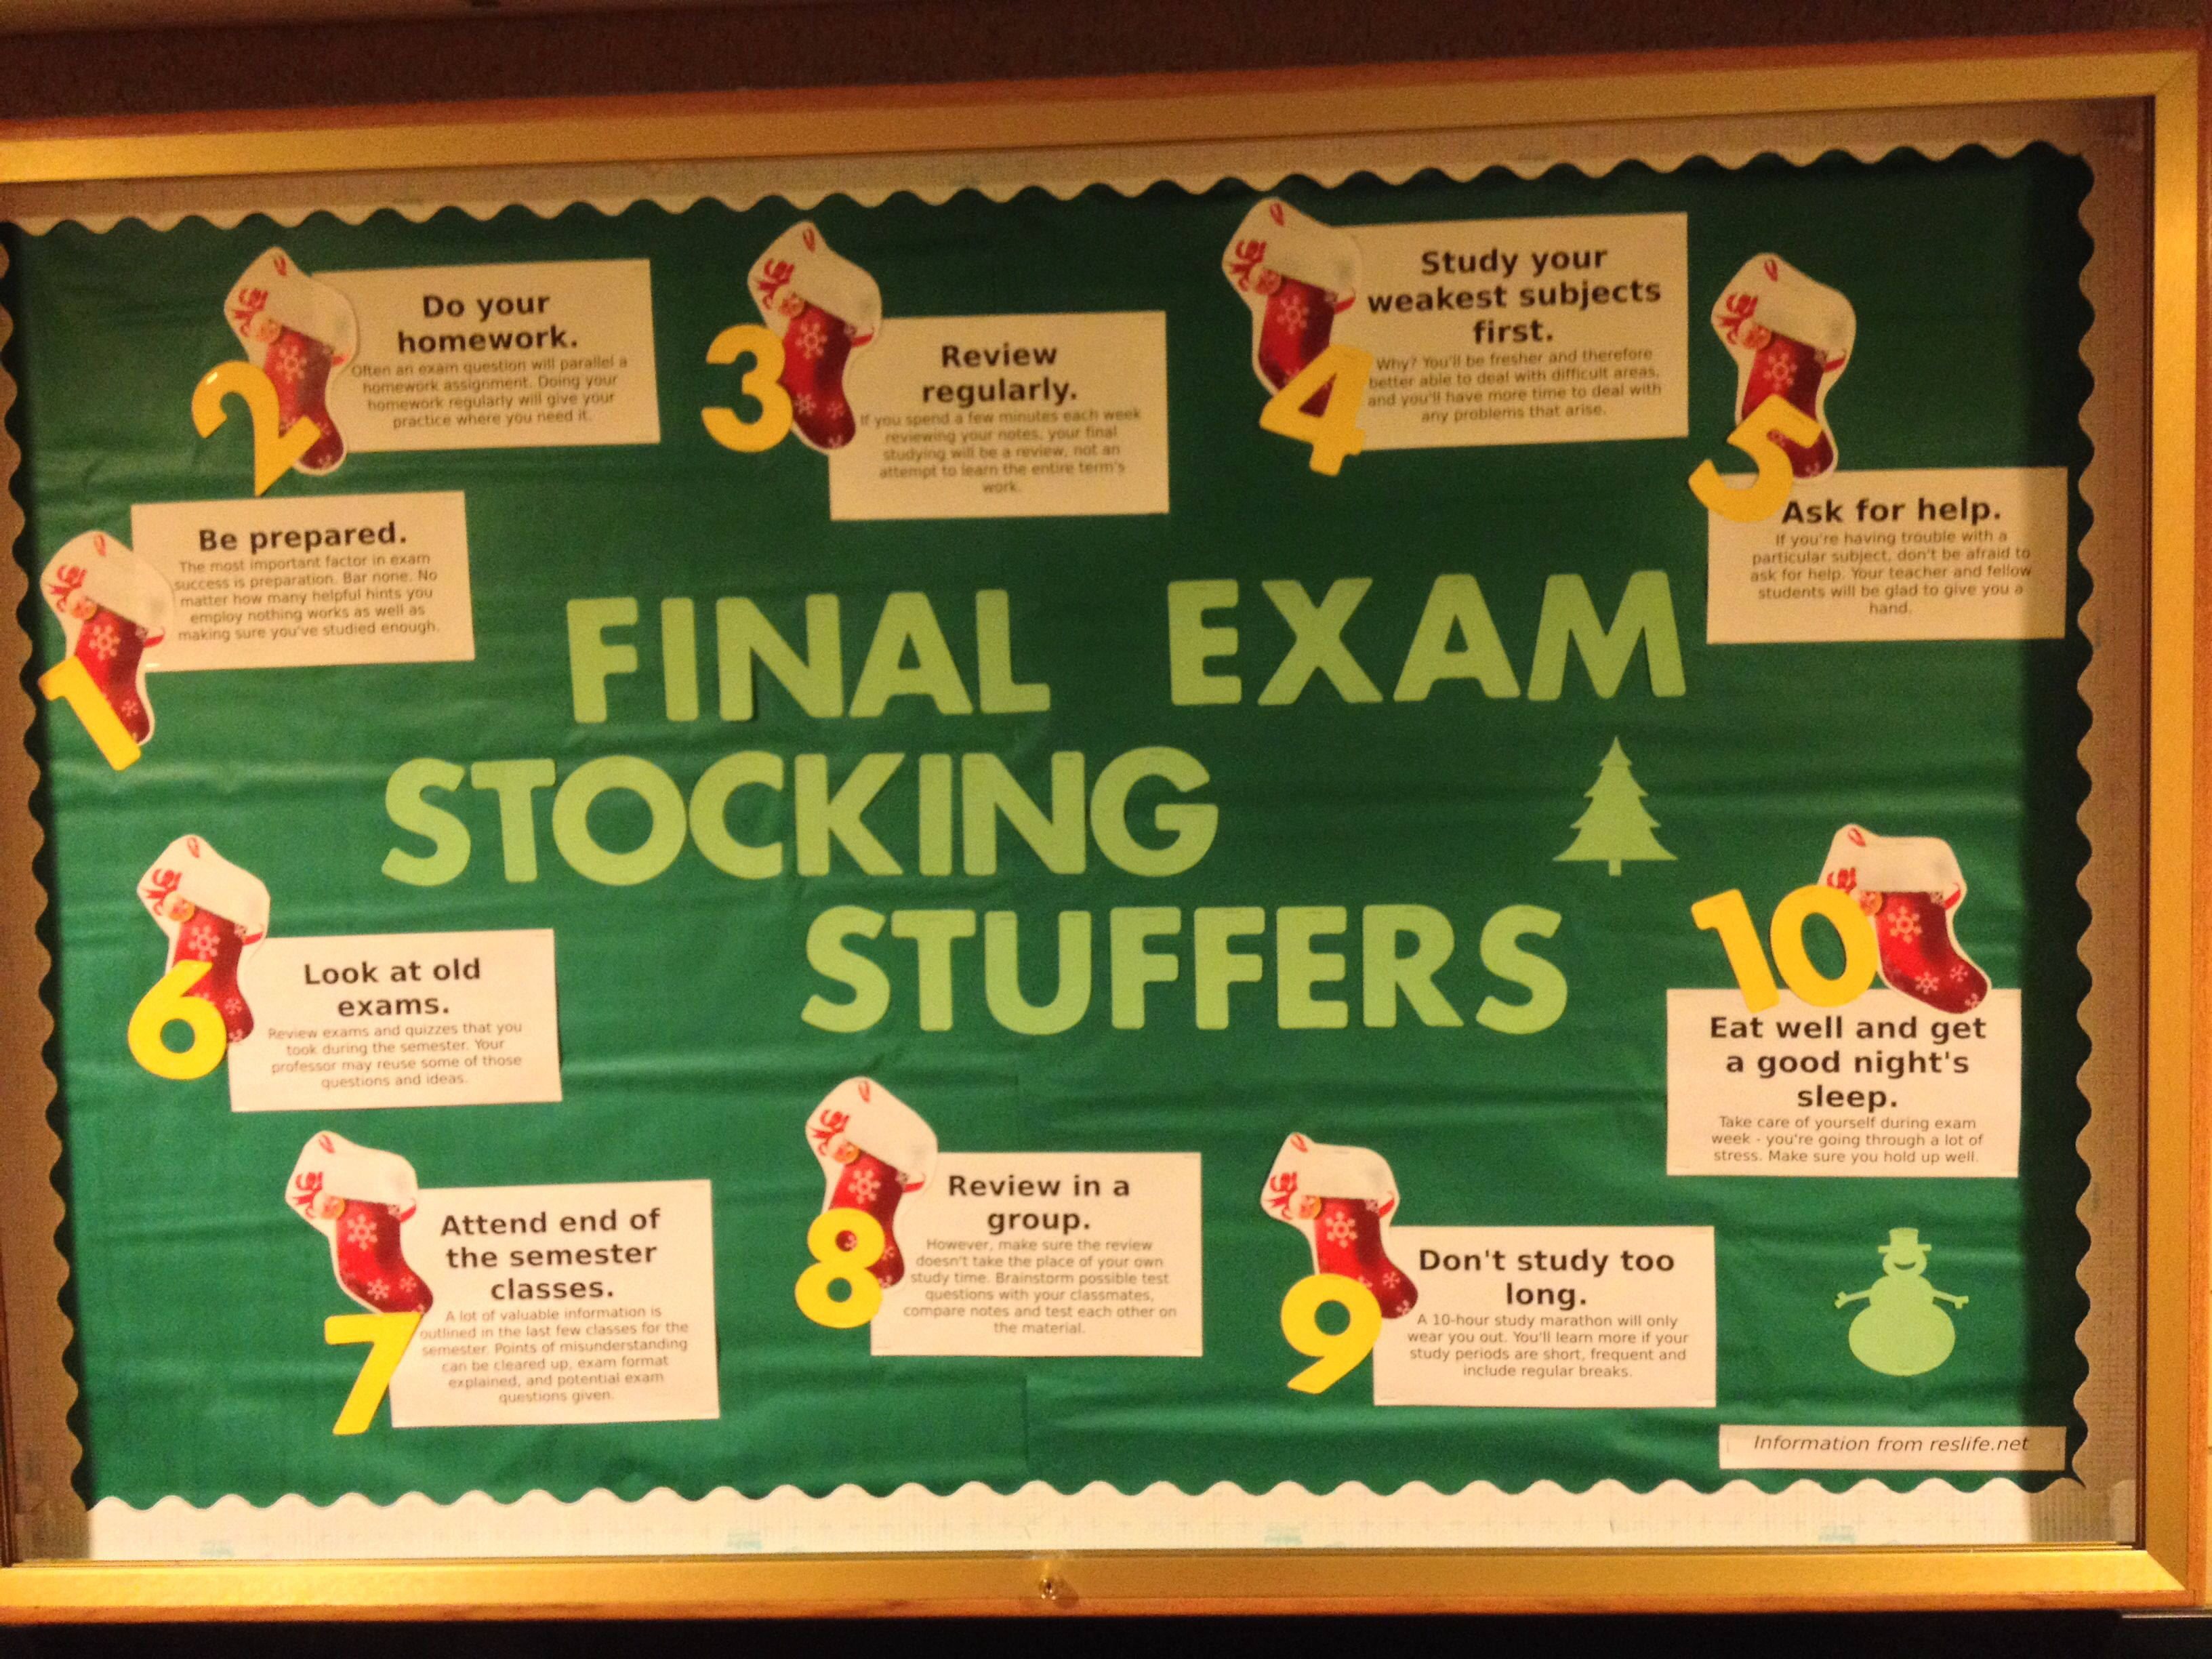 Final Exam Stocking Stuffers Educational Bulletin Board On Study Tips For The Month Of December Idea And Information From Reslife